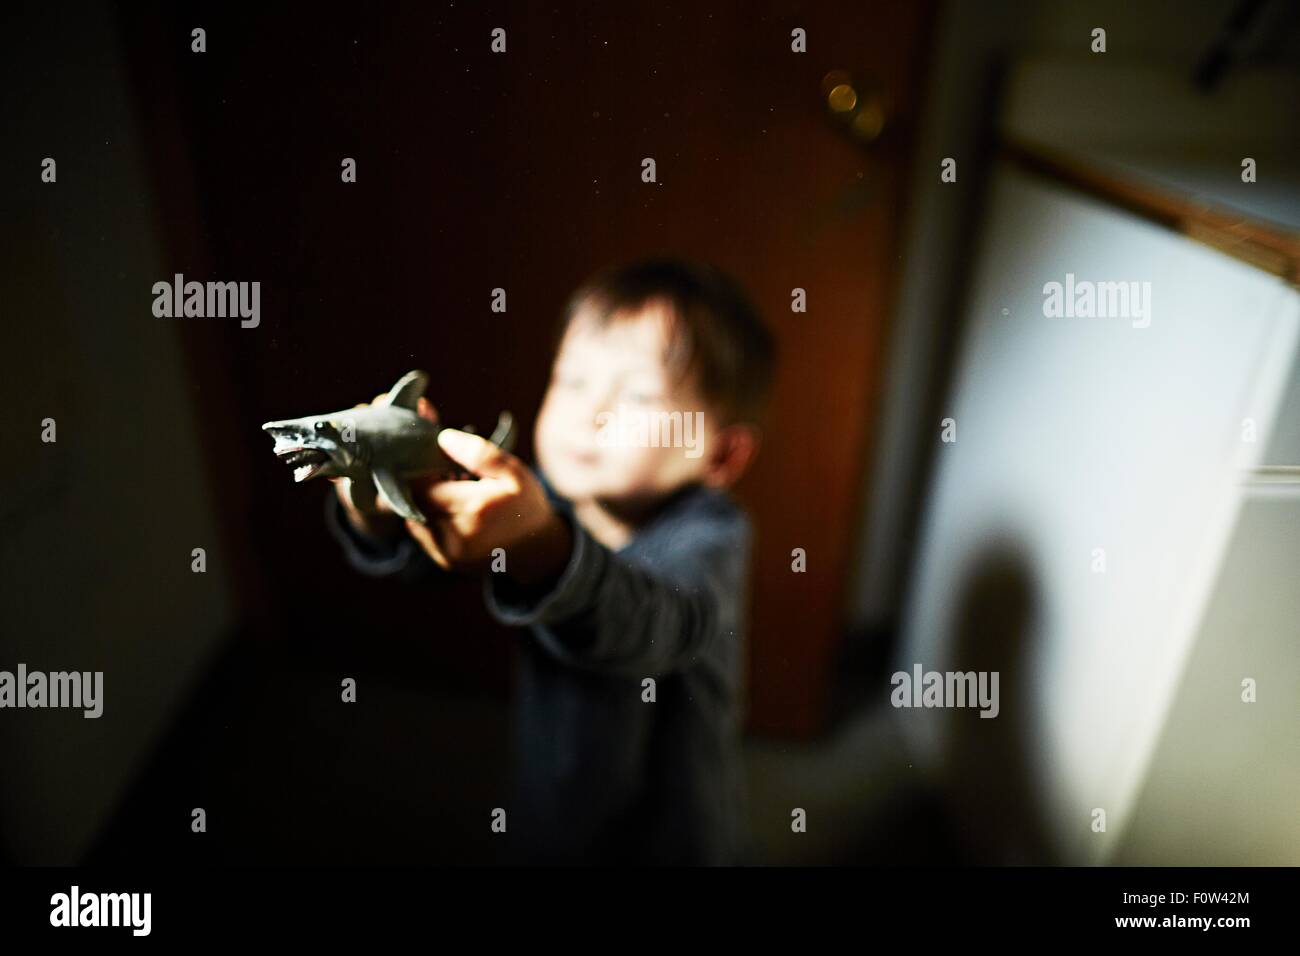 Boy holding up toy shark in kitchen - Stock Image